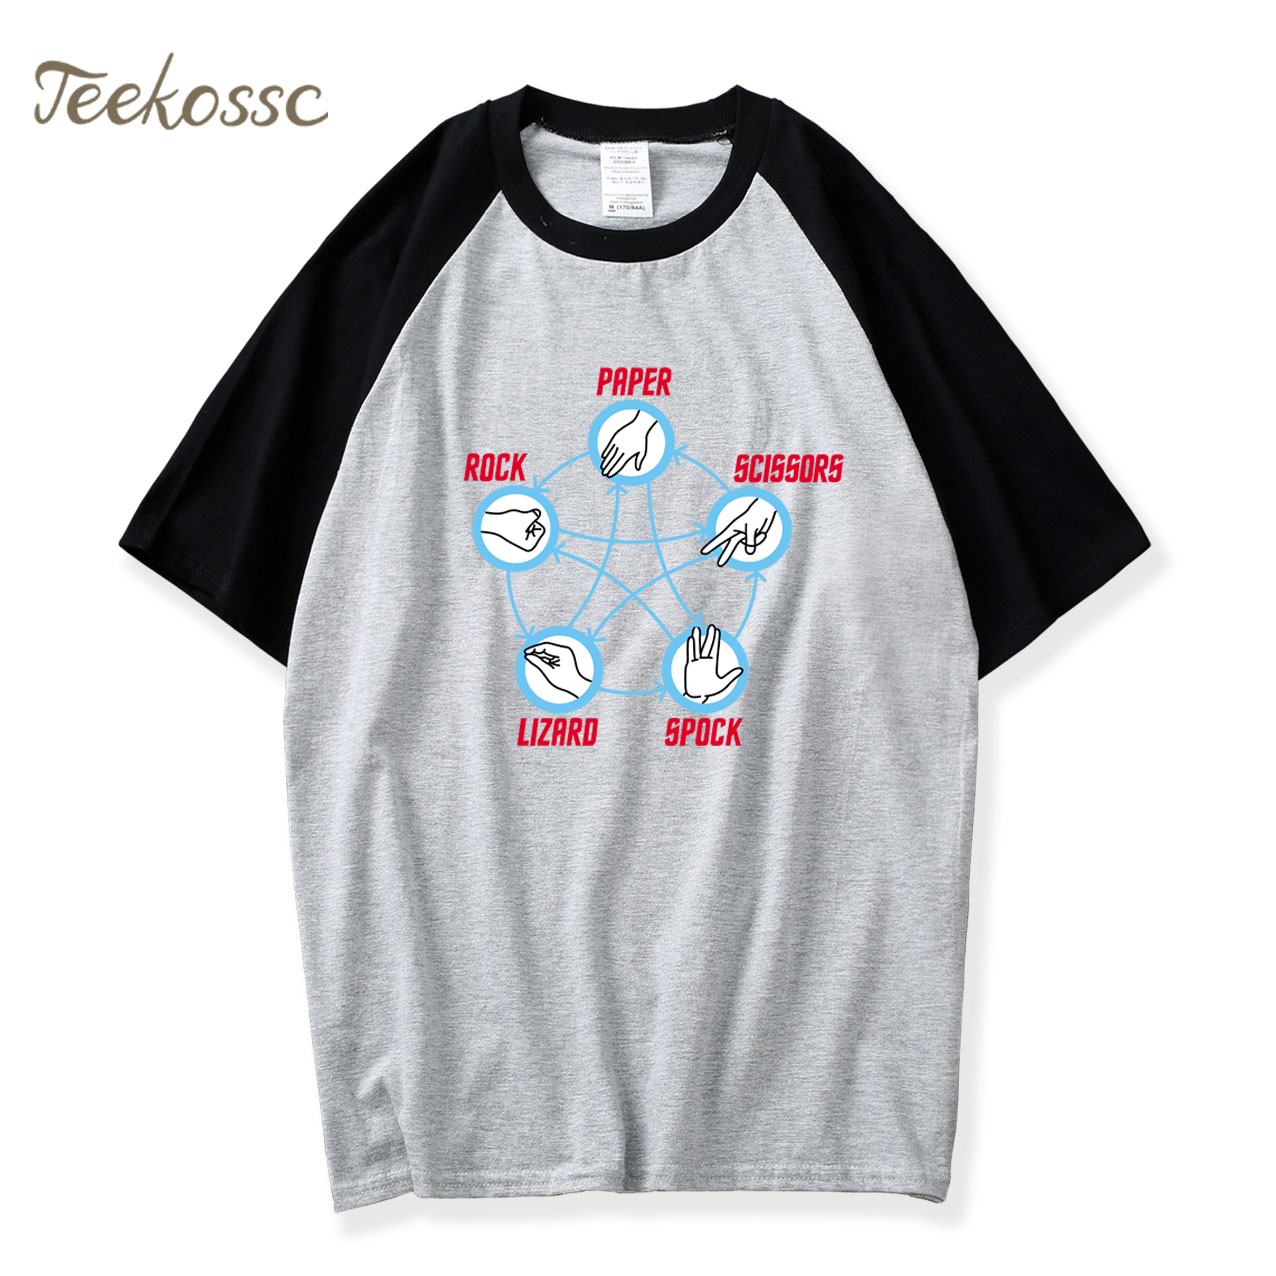 Star Trek Big Bang Theory Rock Paper Scissors Lizard Spock Adult T-Shirt 2018 Summer Raglan T Shirt Men 100% Cotton Mens Shirts